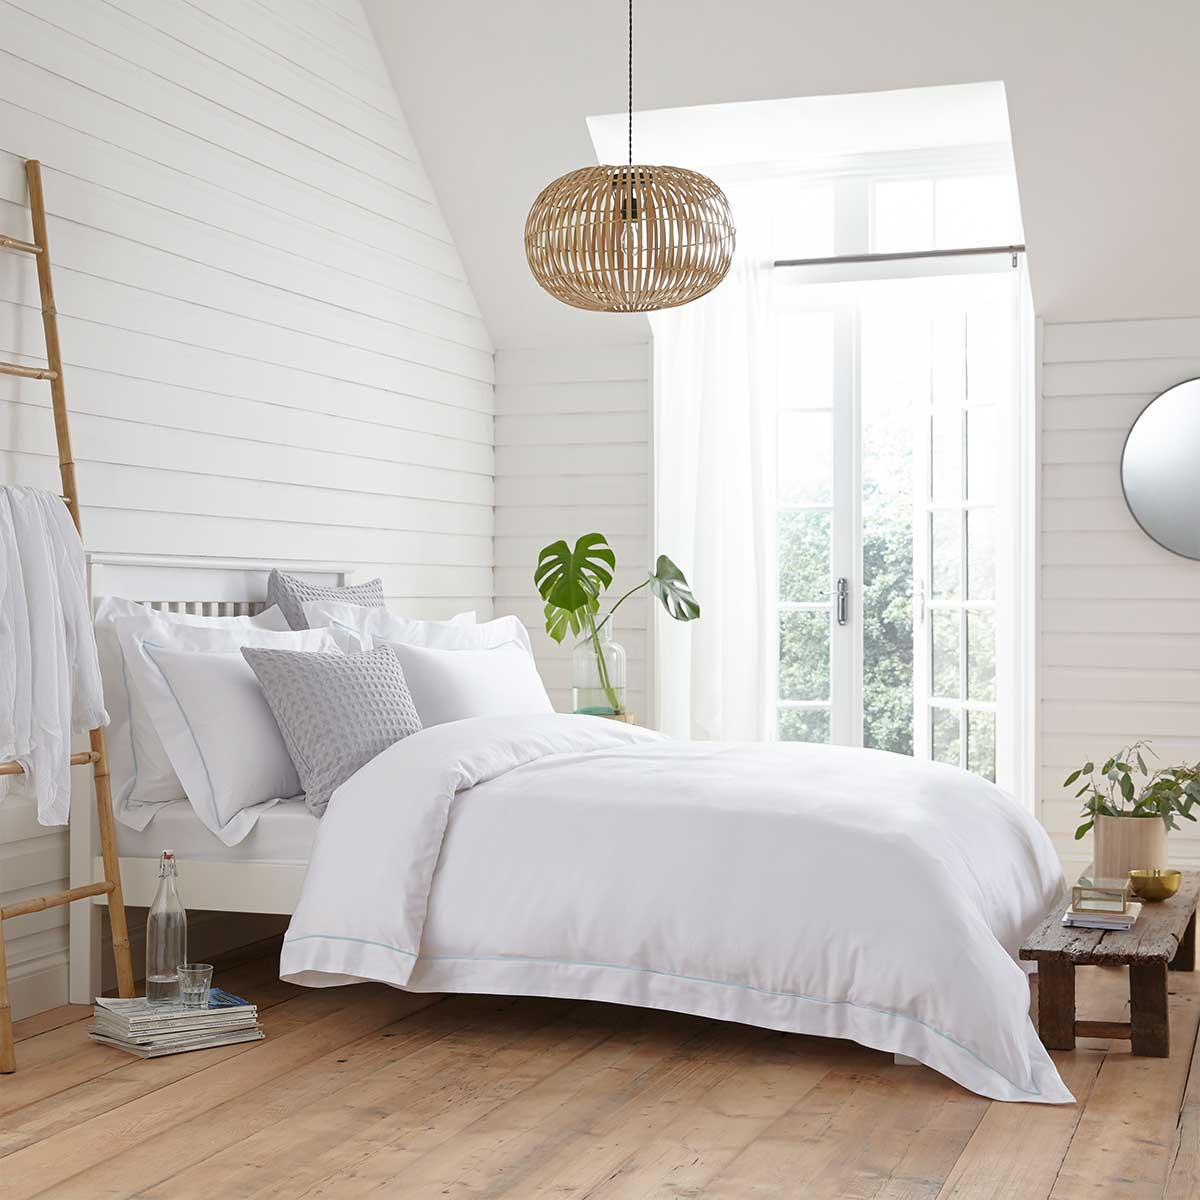 How To Get More Natural Light In Your Bedroom